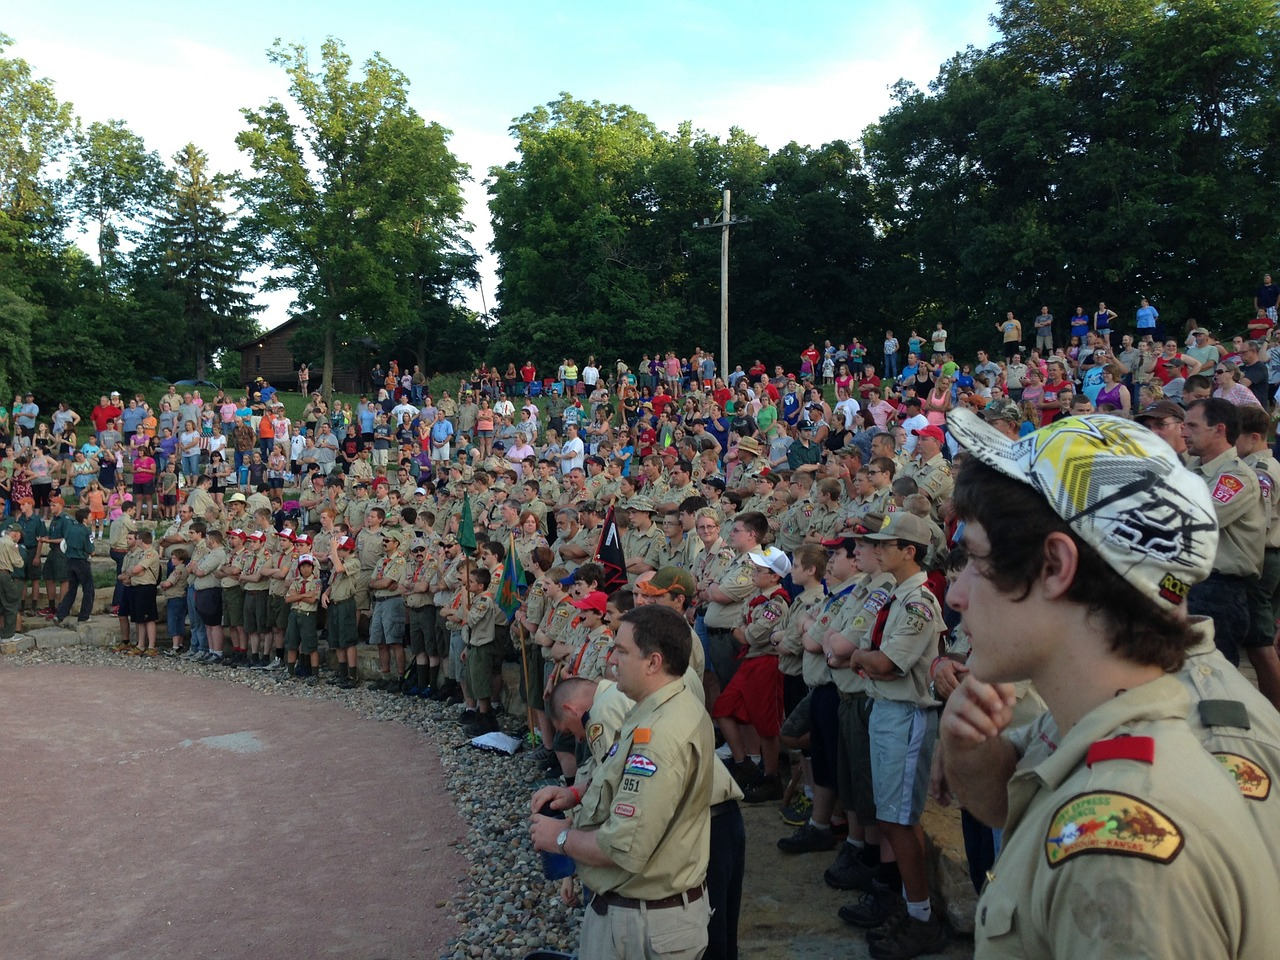 Finding a Boy Scout Troop and ADD/ADHD